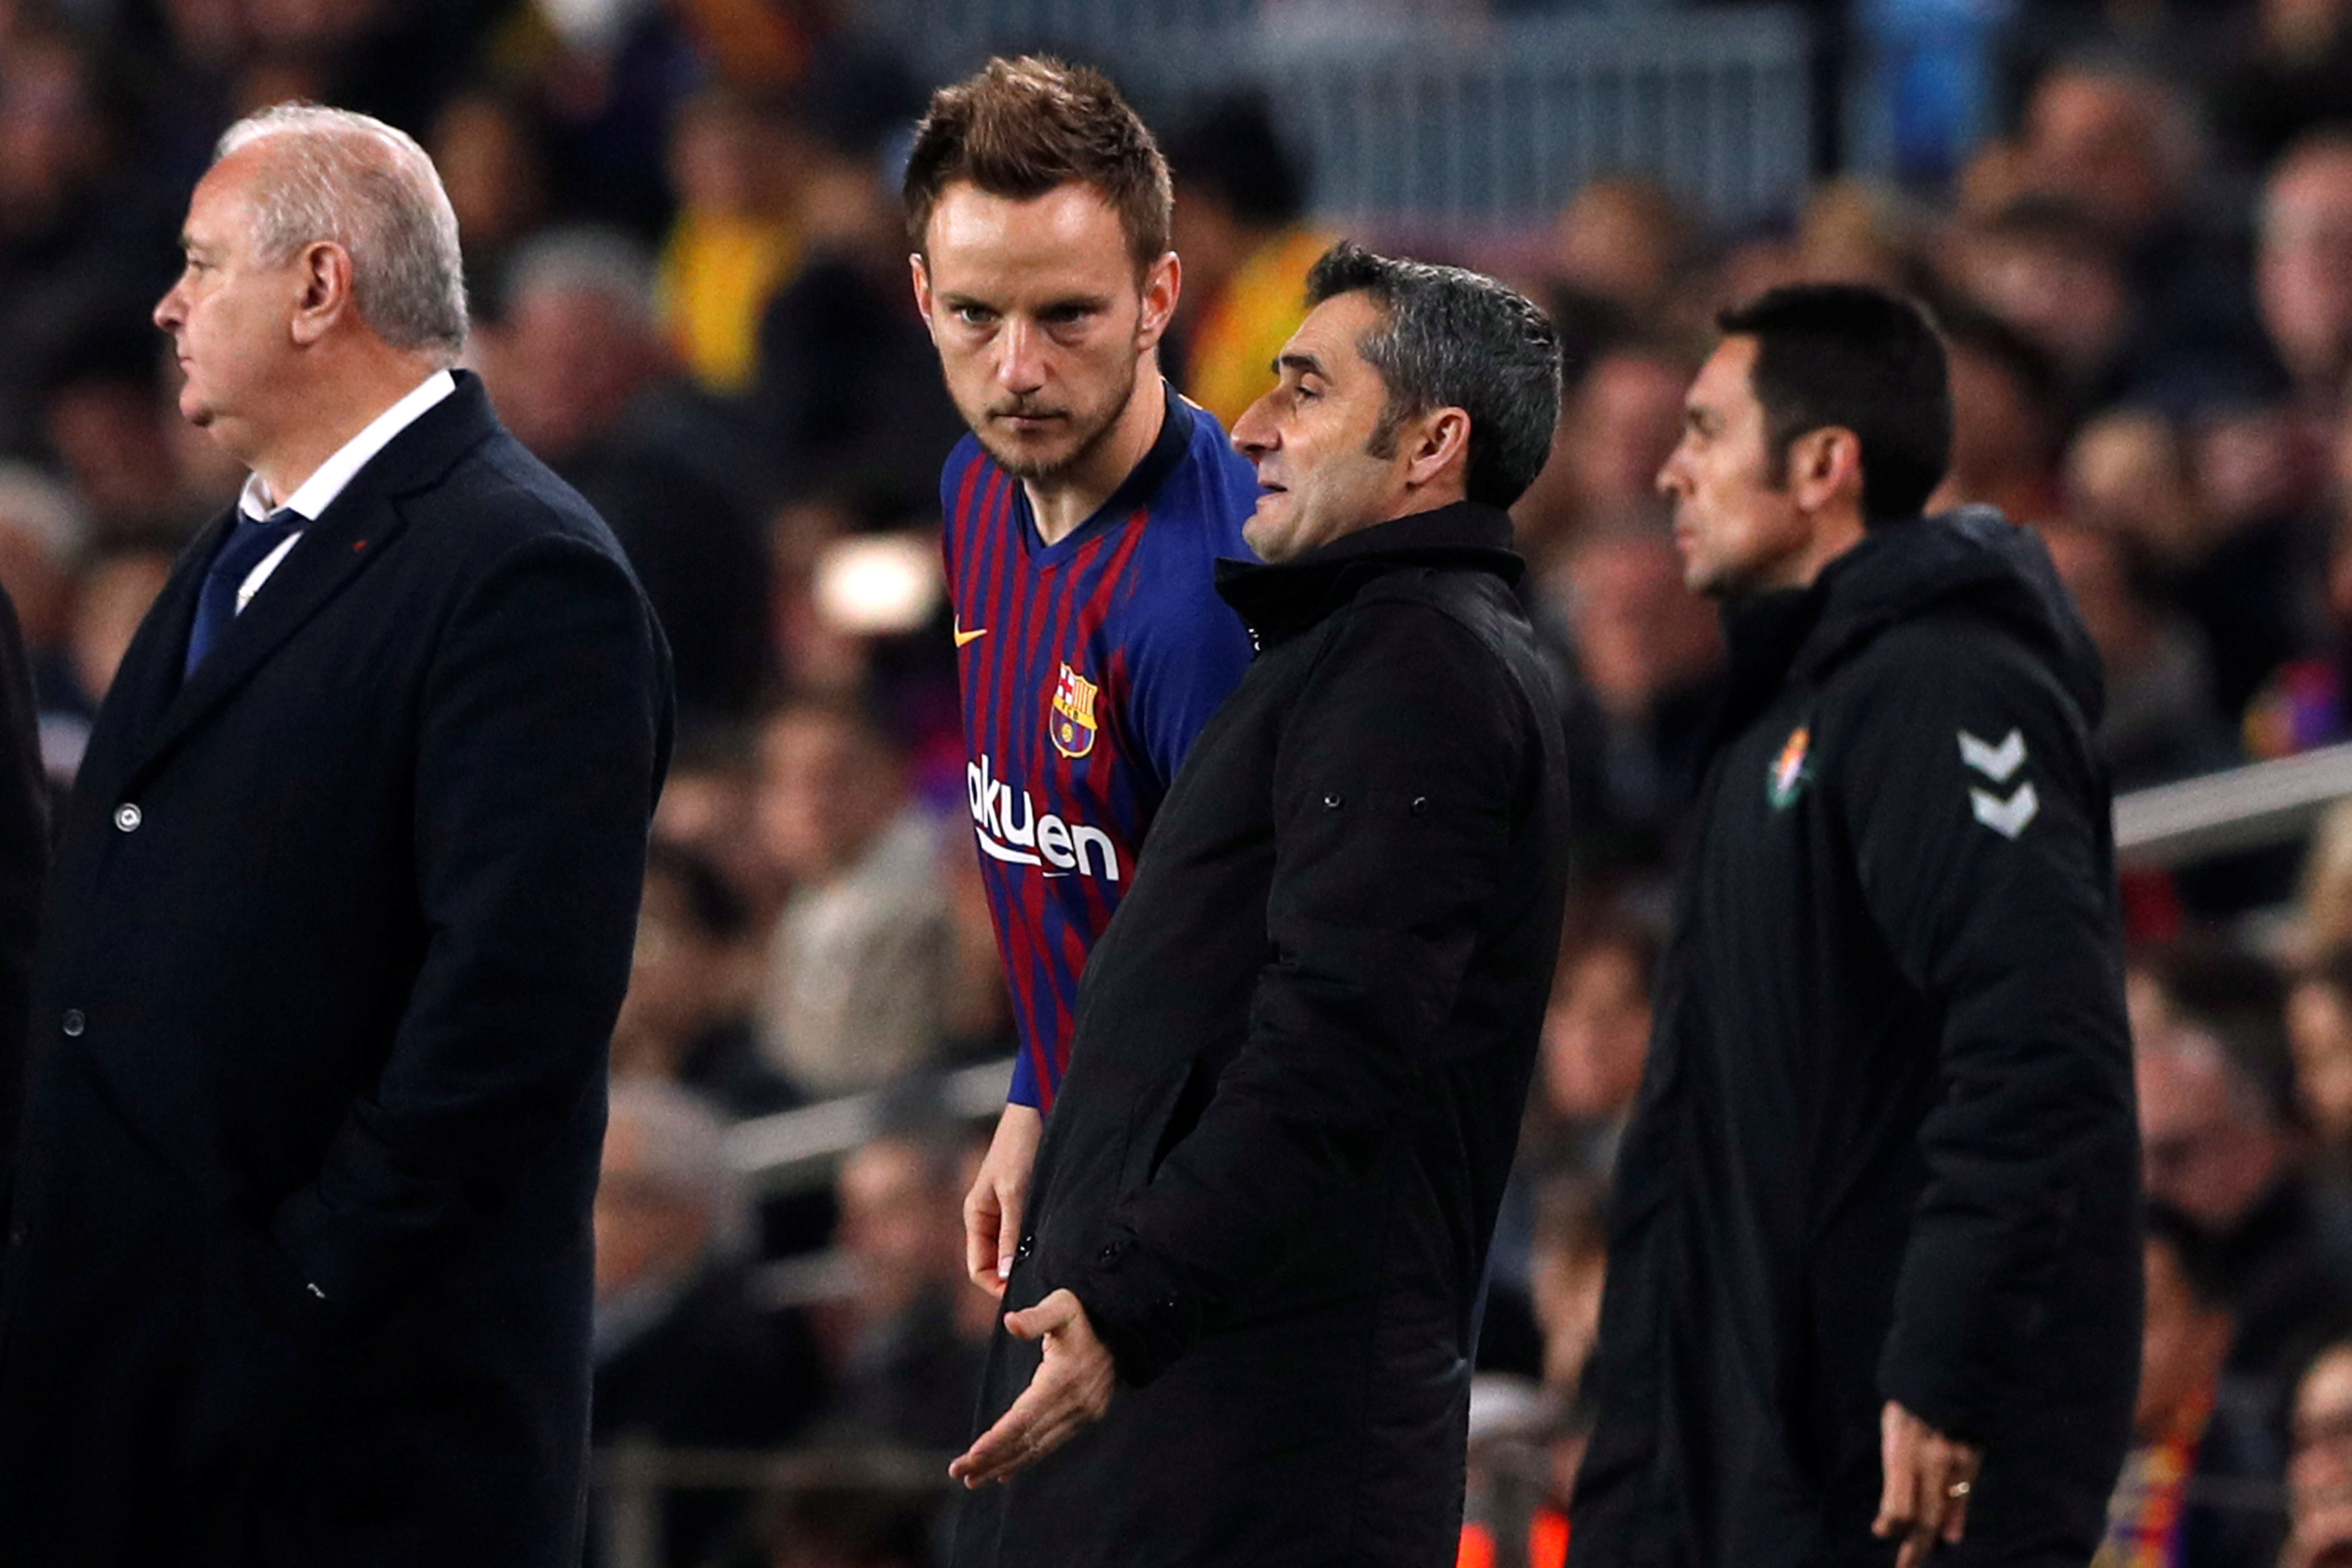 Barcelona star Ivan Rakitic decides to stay at the club